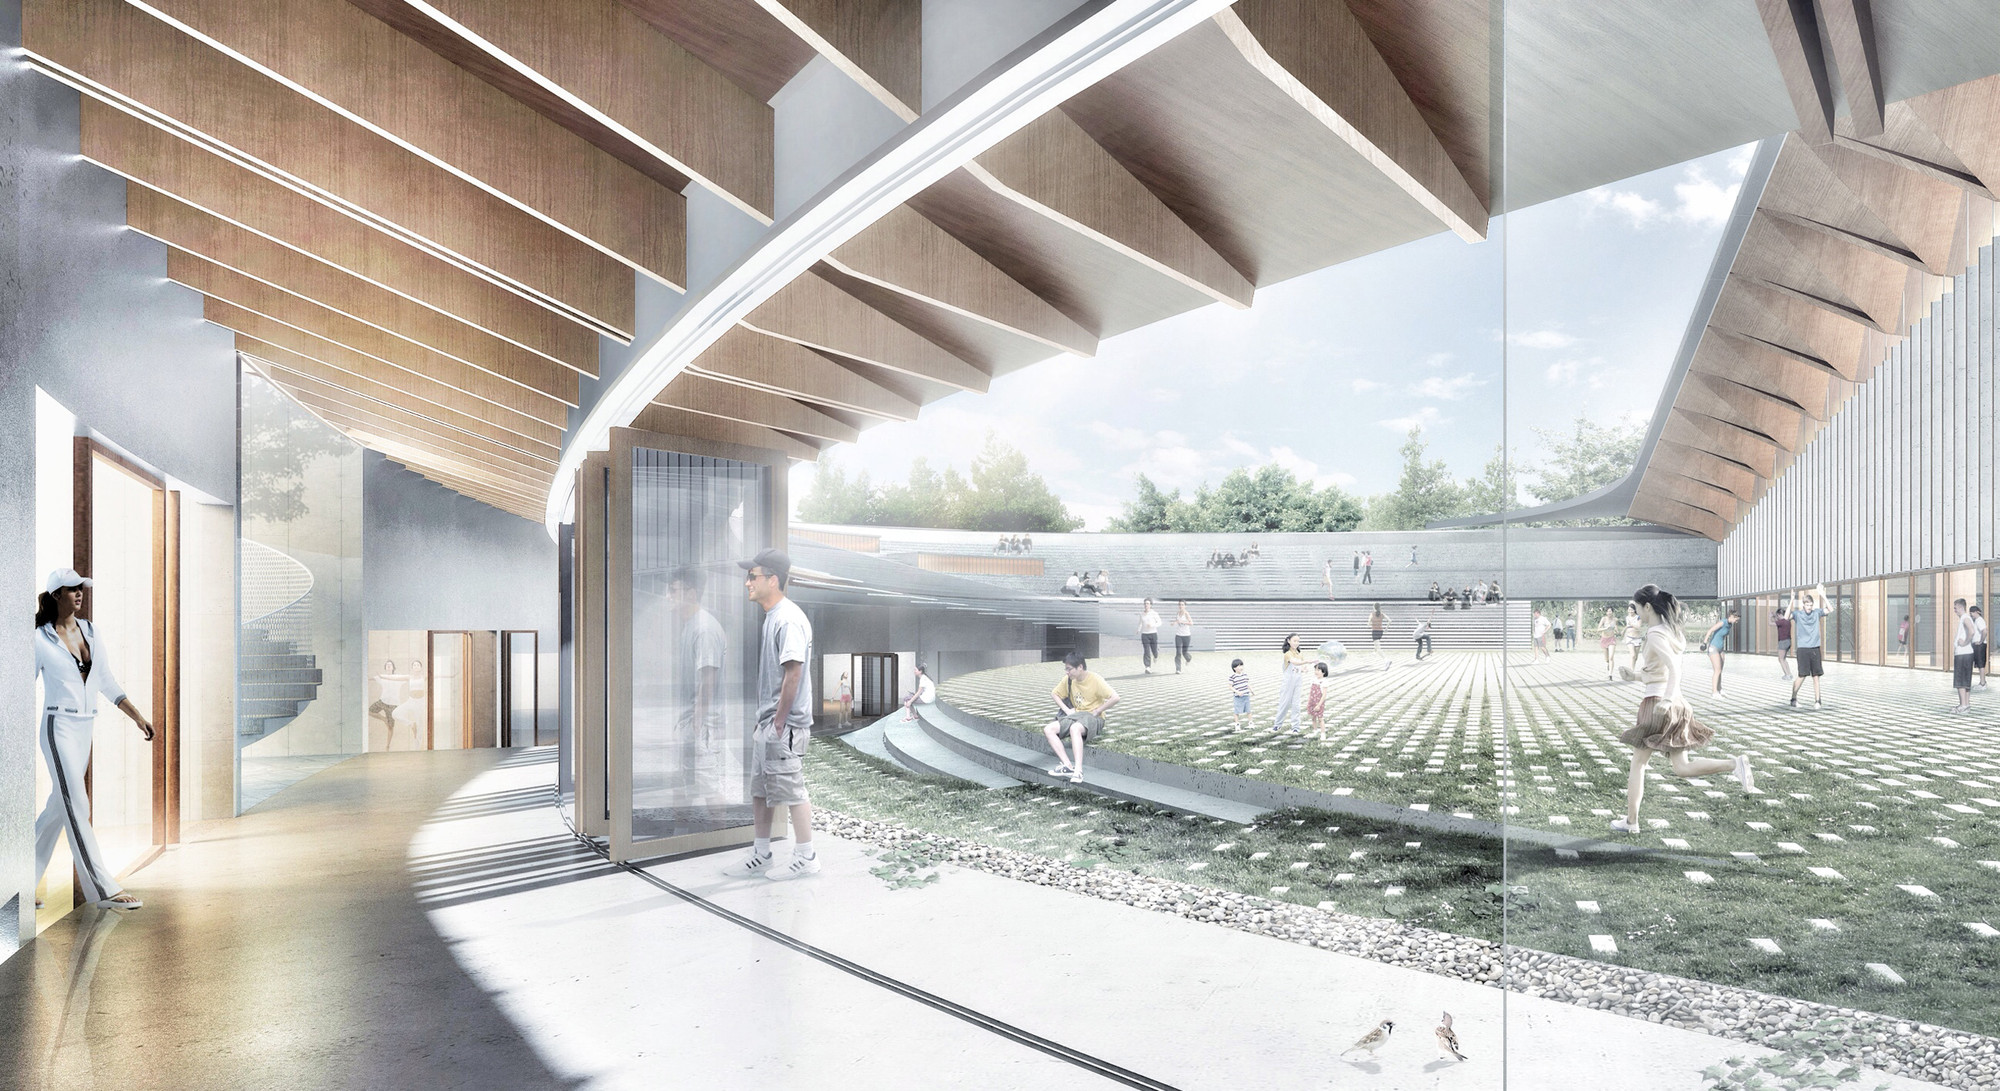 Gallery of competition entry noa s proposal for dalseong for Schule design